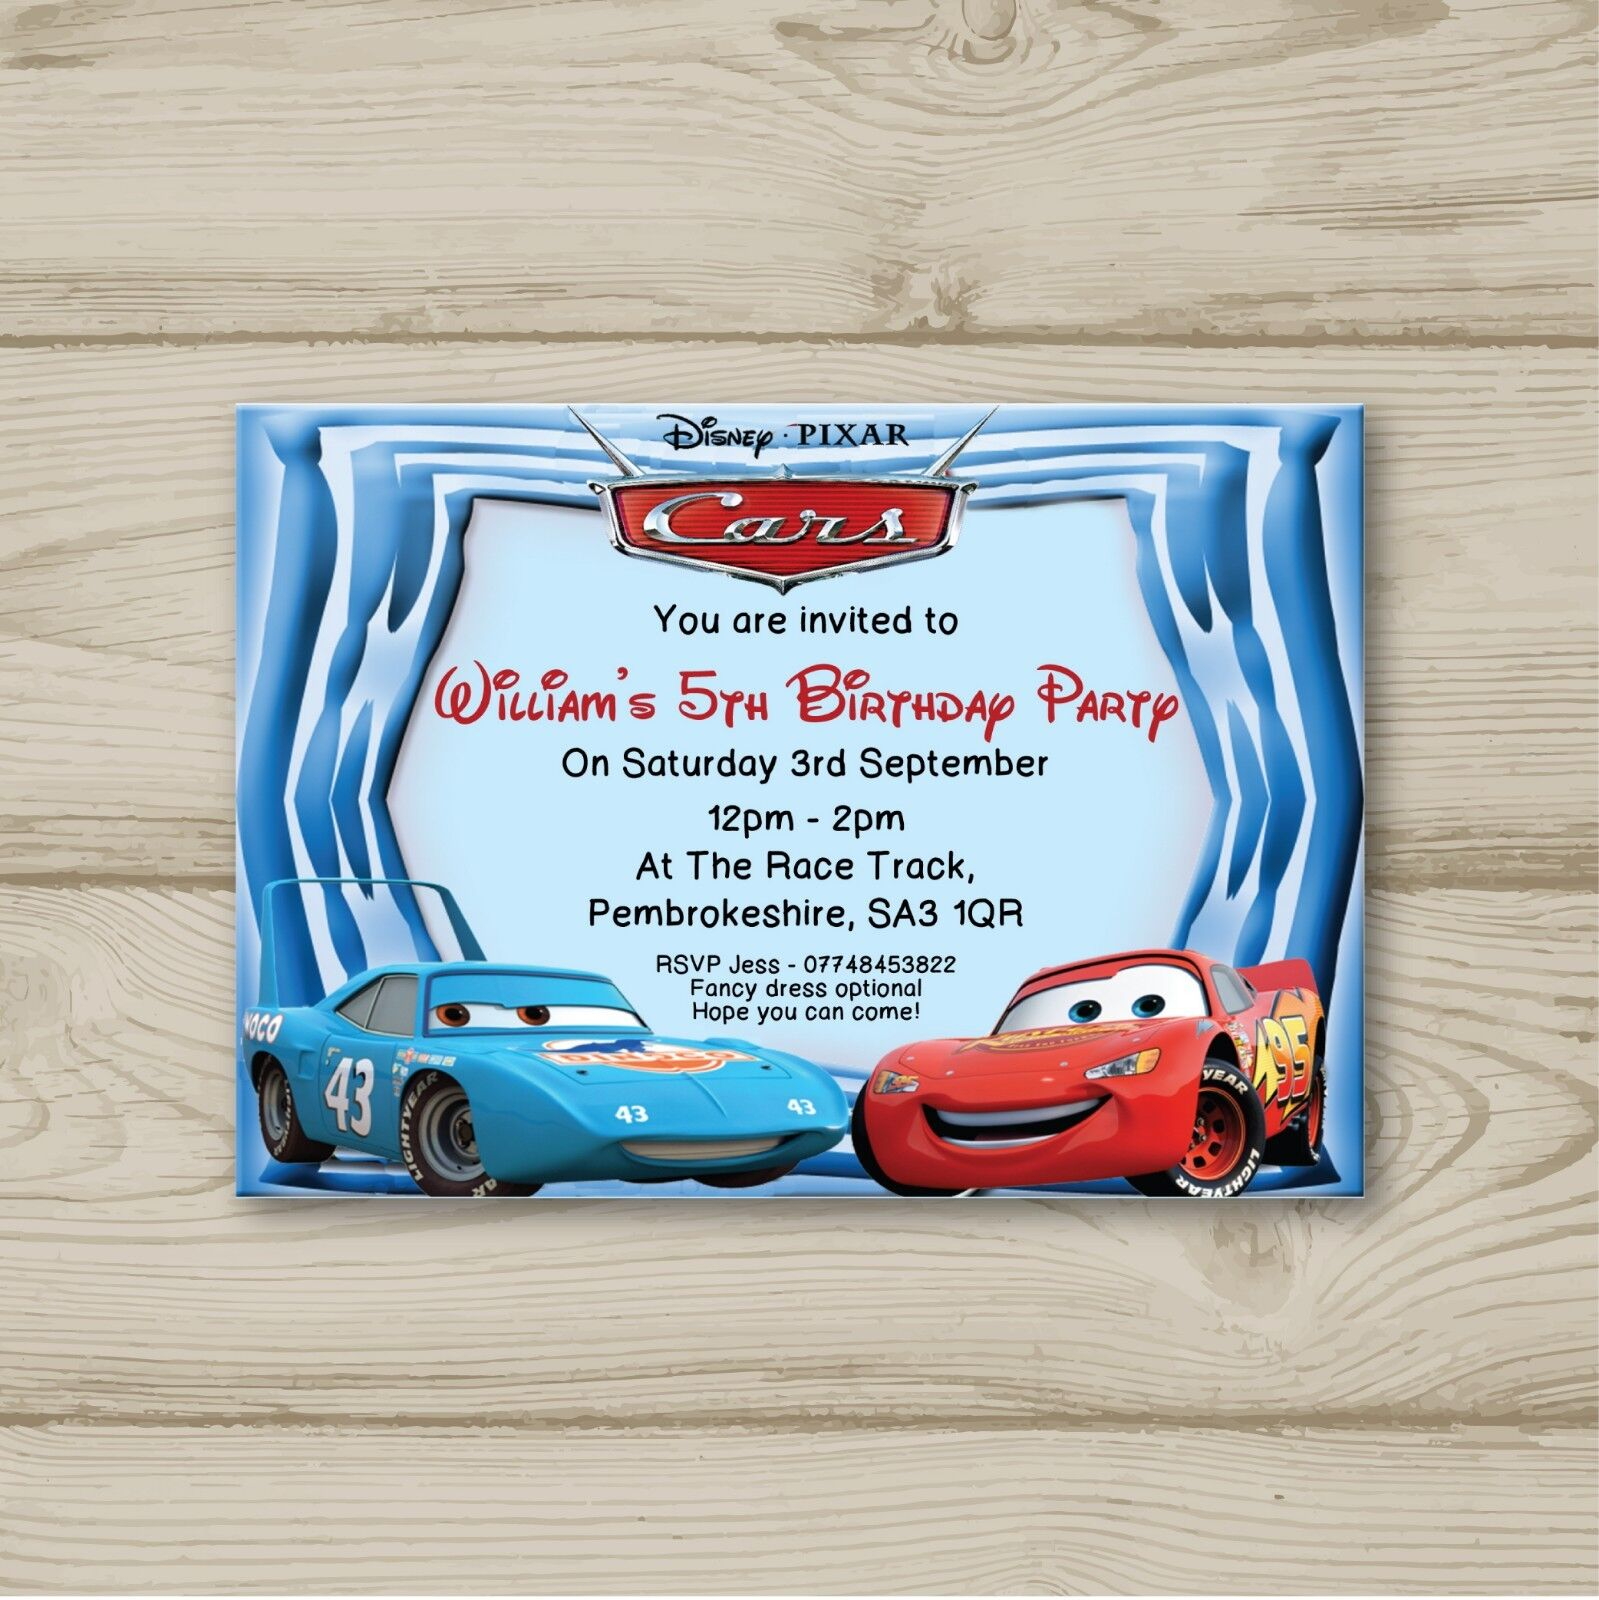 Disney Cars Lightning McQueen Birthday Party Invitations Personalised 1 Of 2FREE Shipping